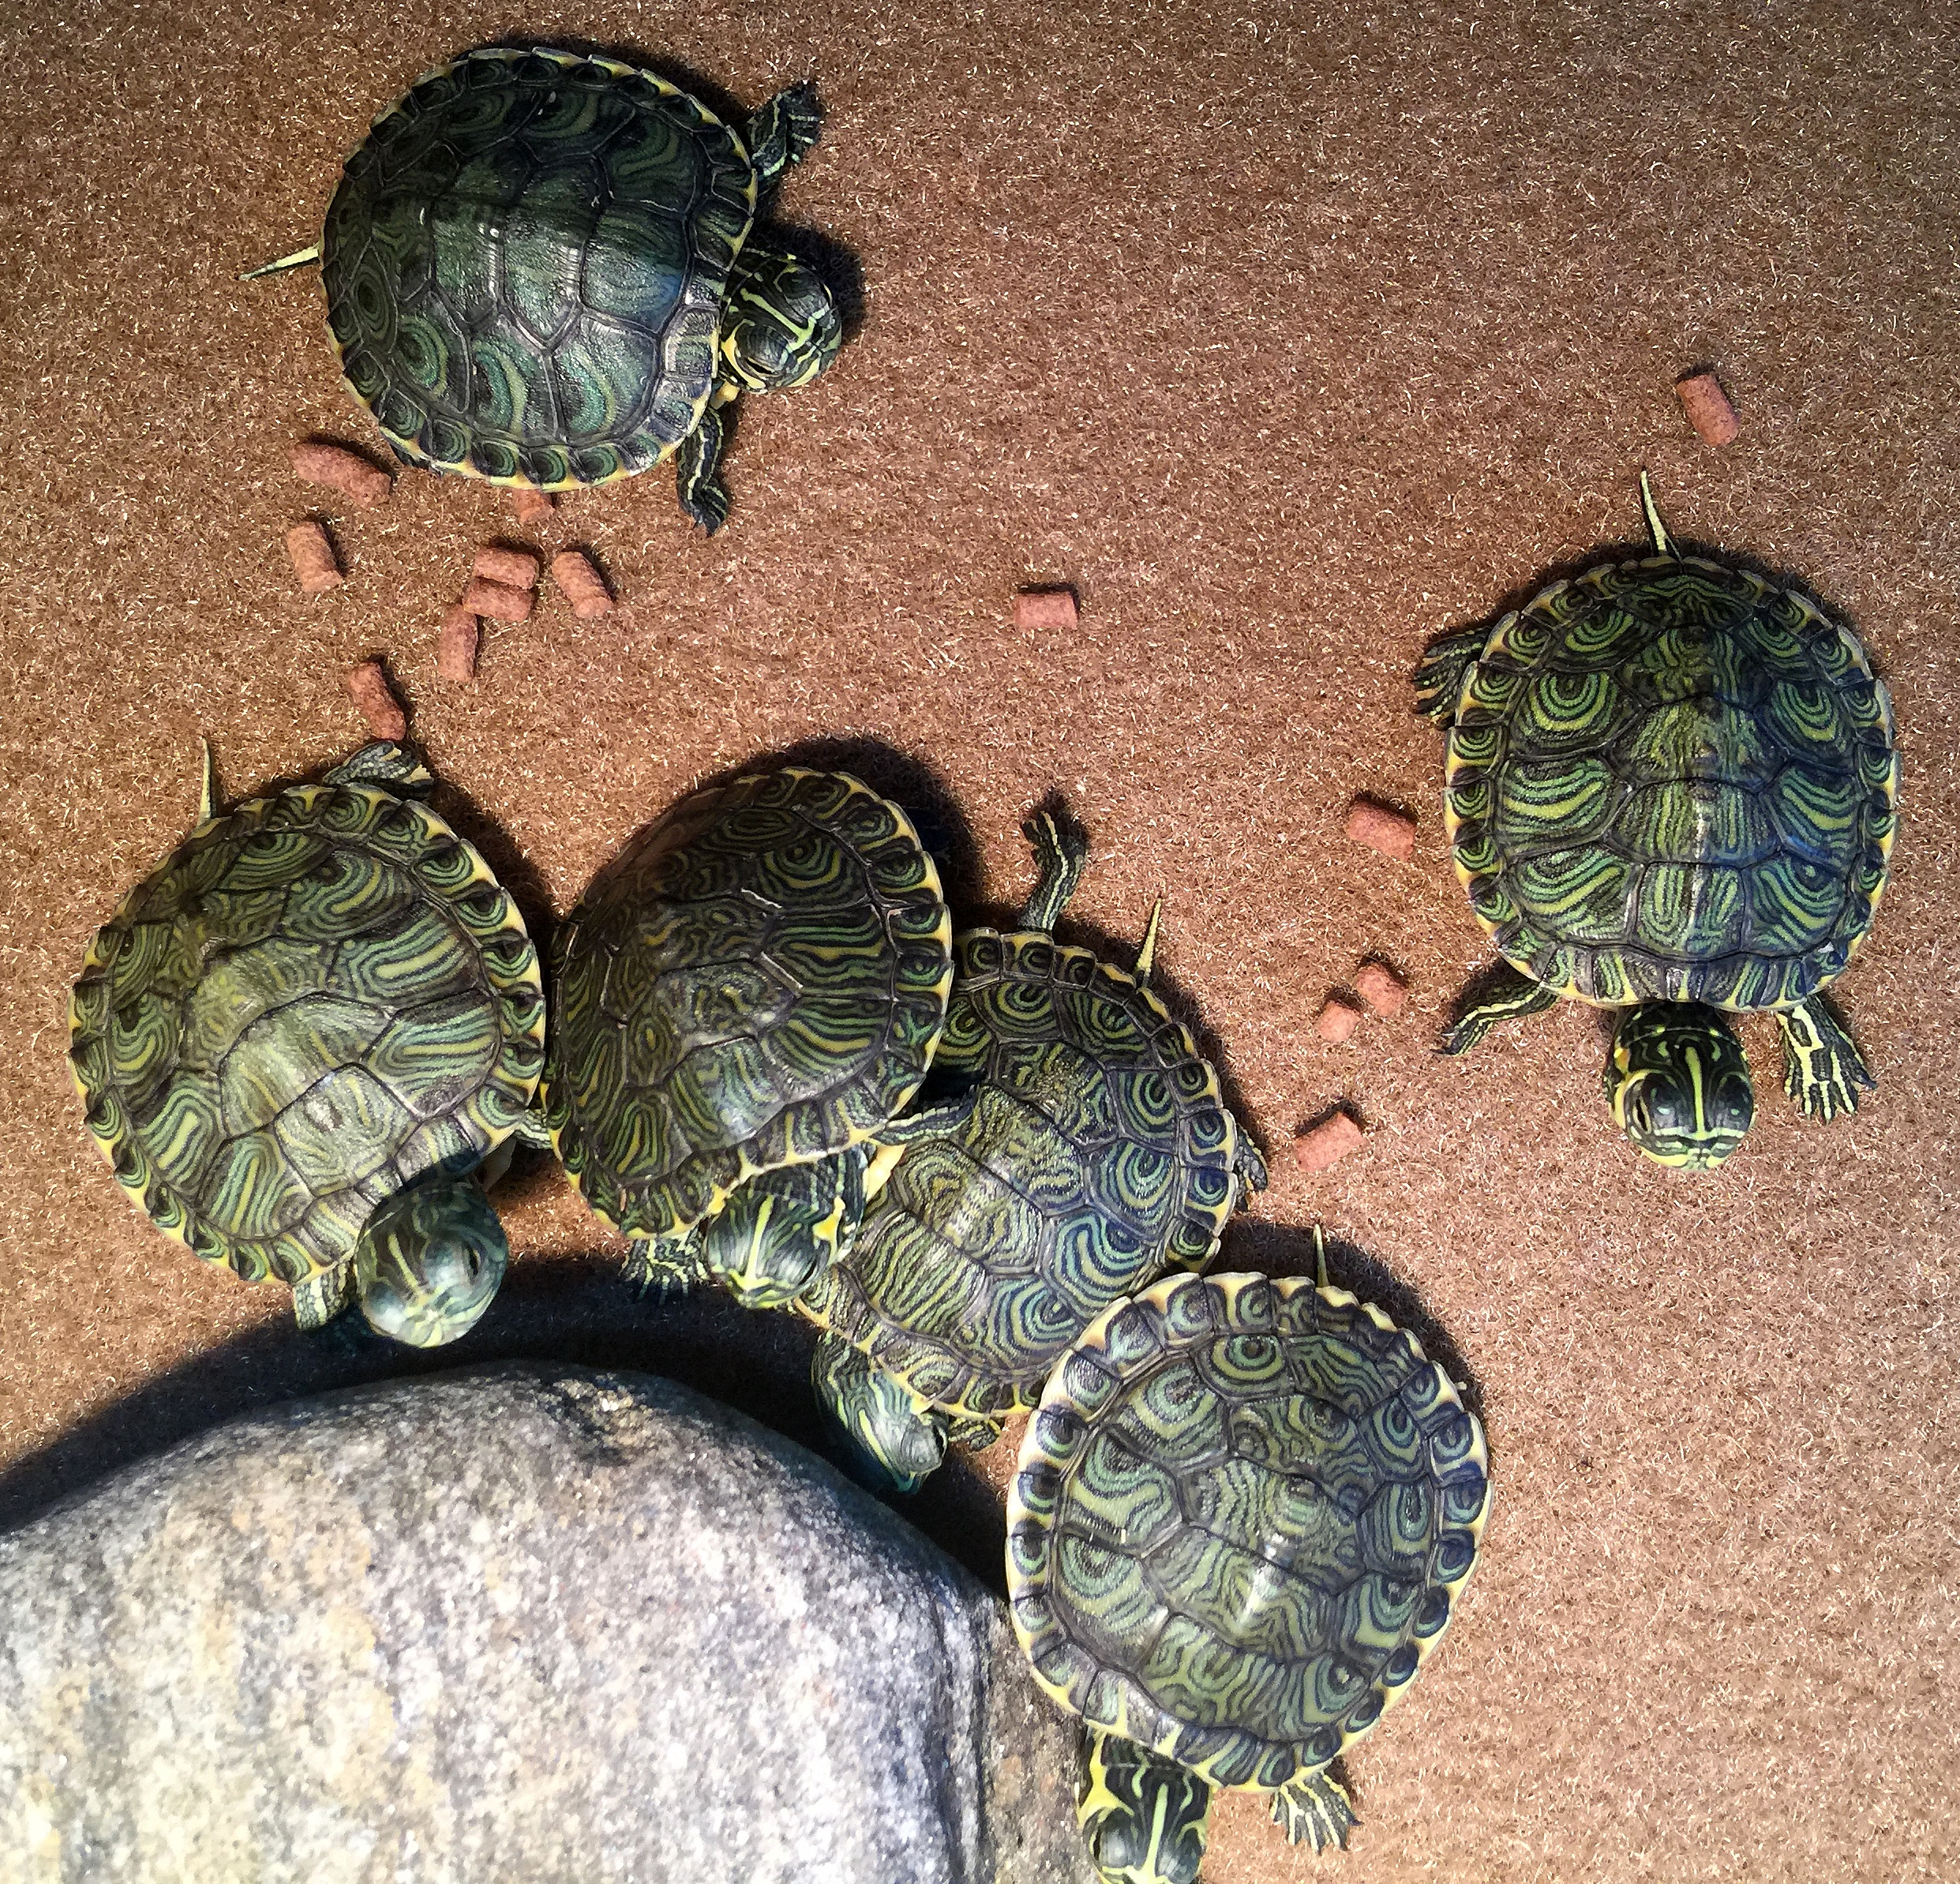 YBST ~ Four months ago 6 hatchling turtles arrived, 04/23